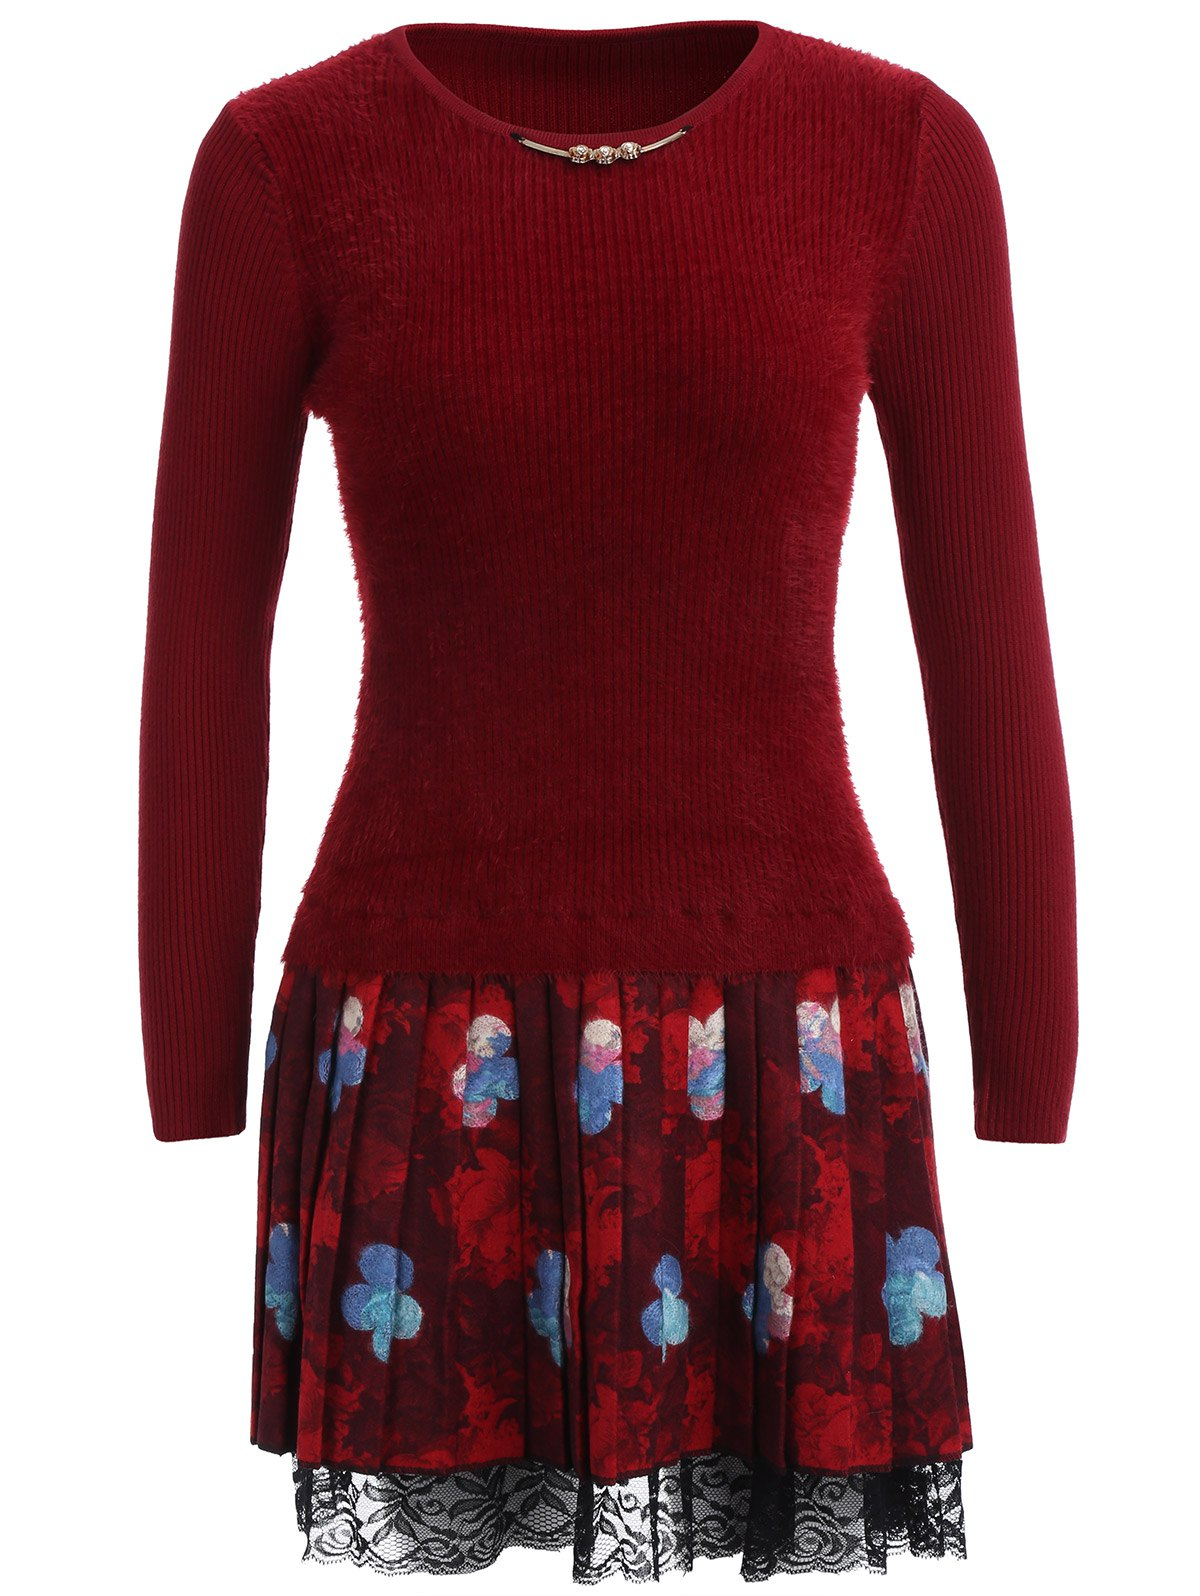 Floral Lace Trim Fuzzy Sweater  Dress - WINE RED ONE SIZE